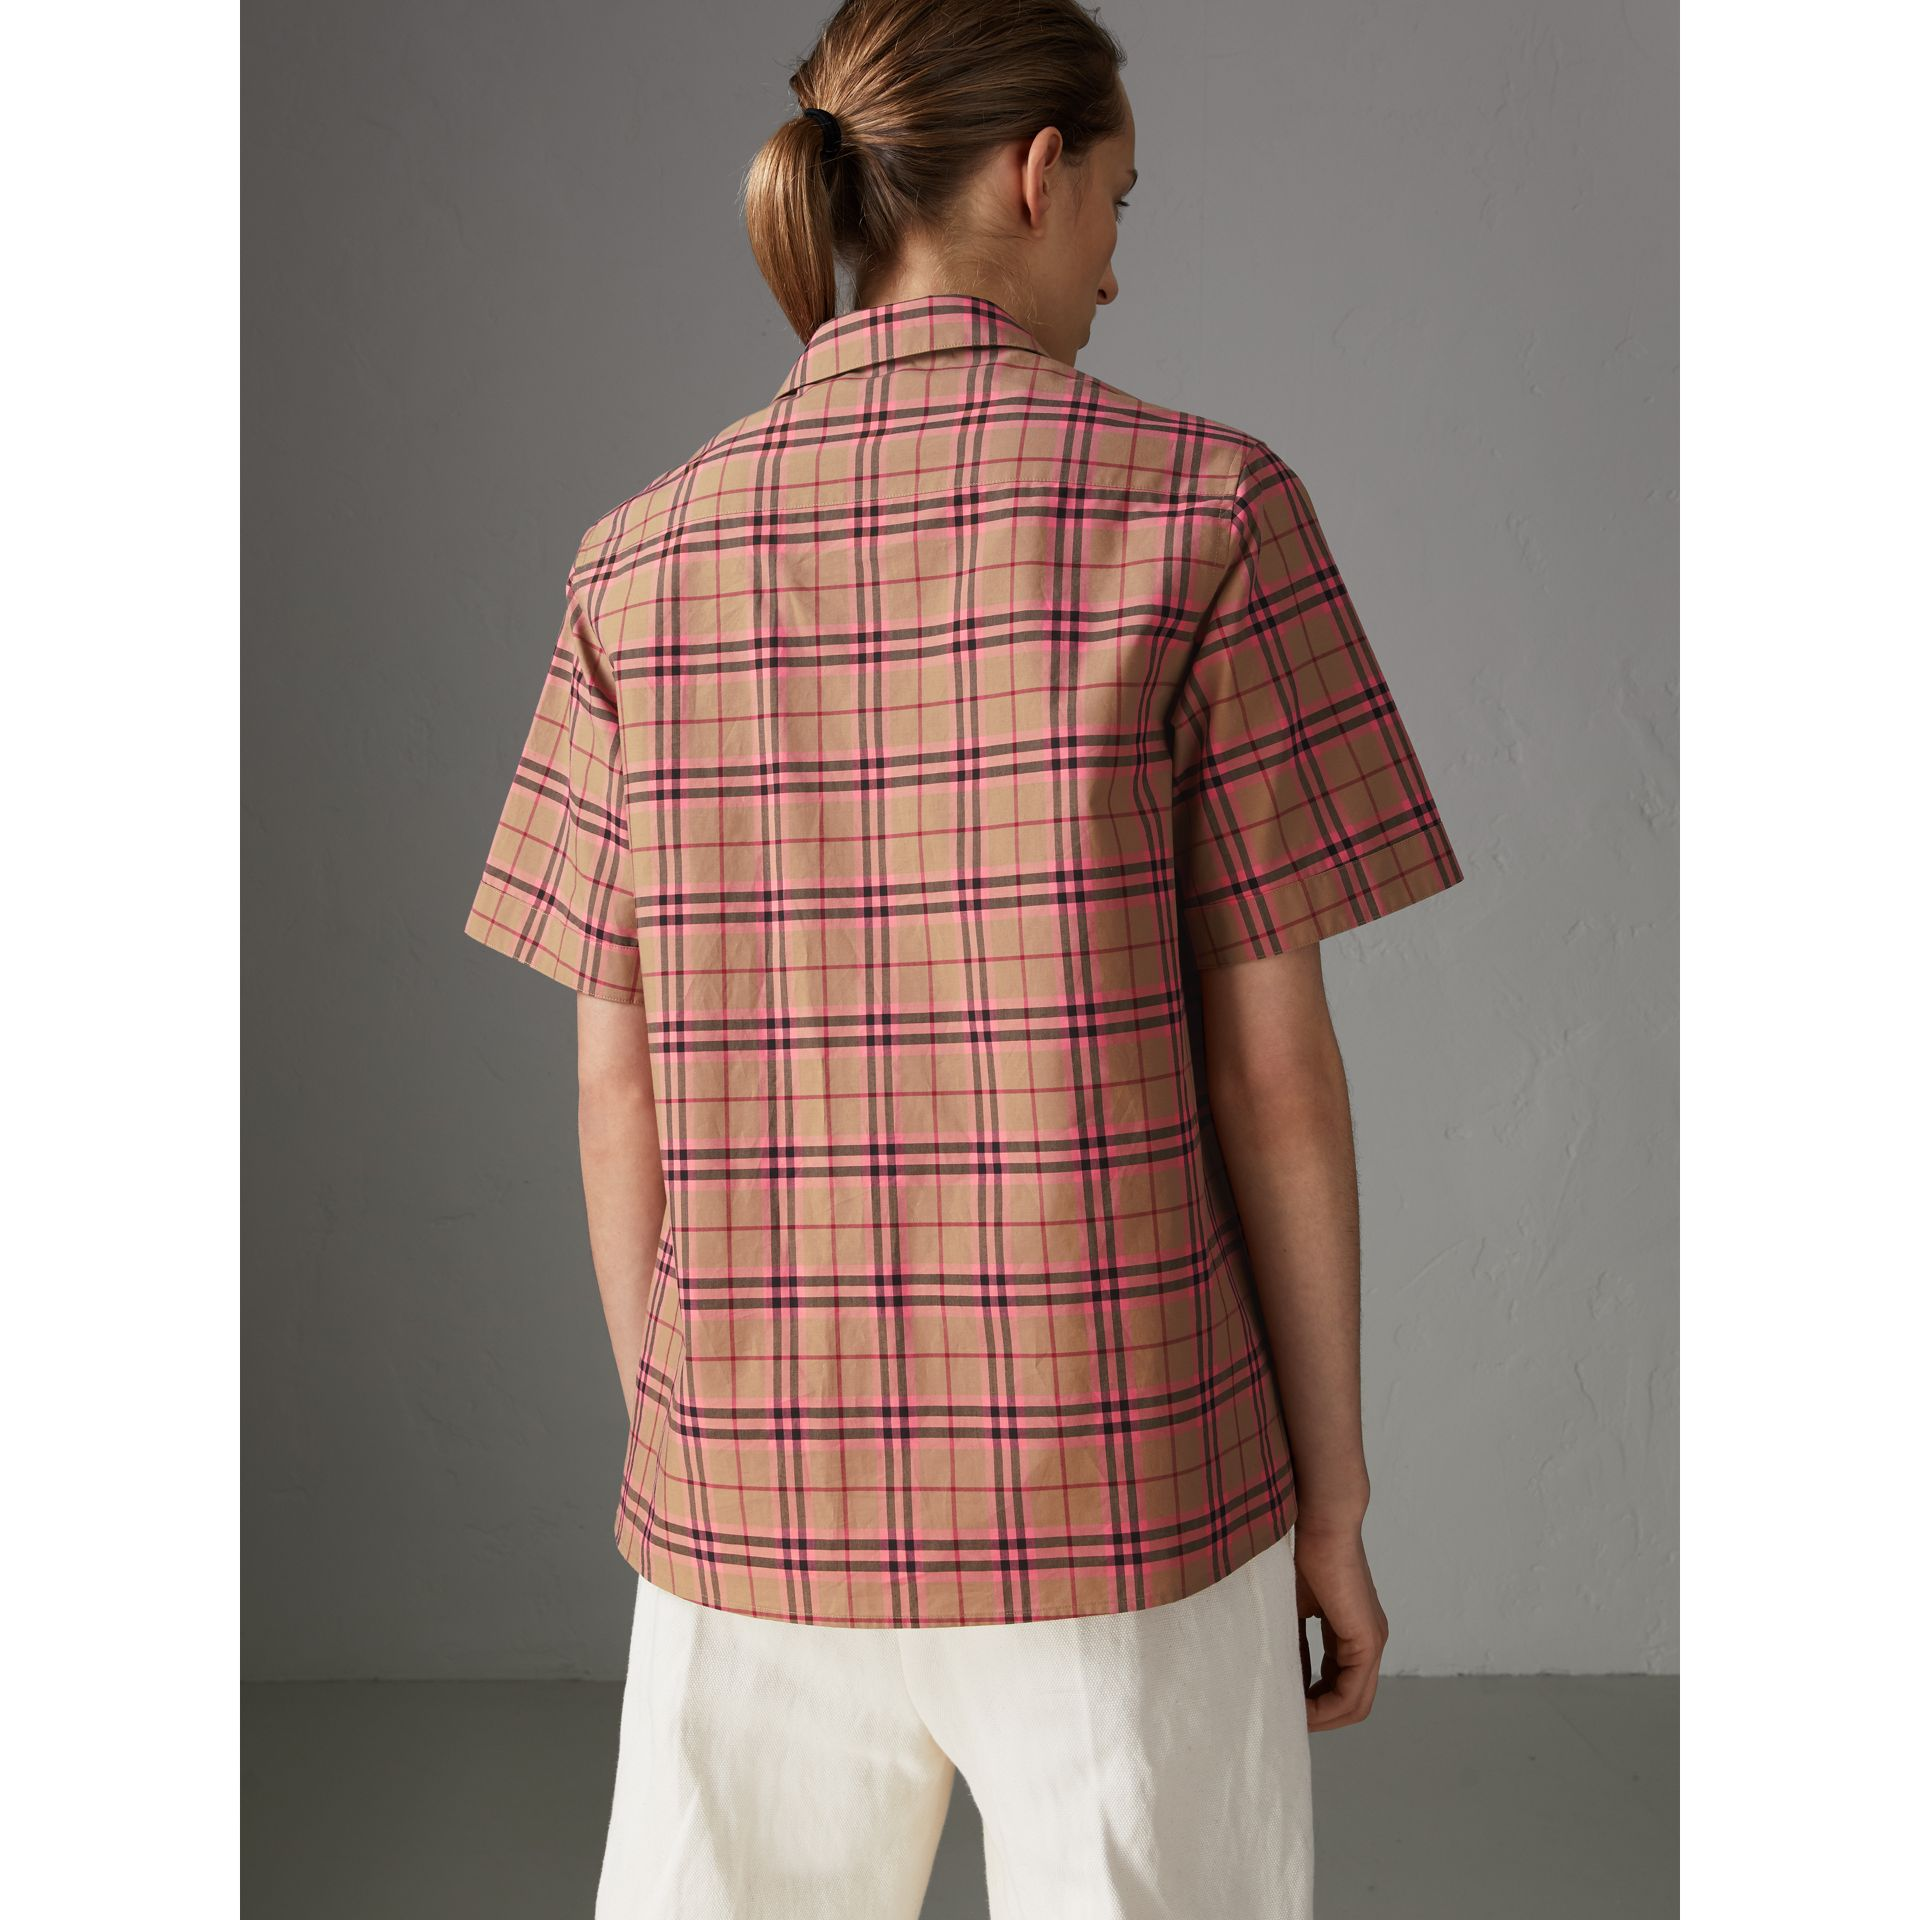 Check Cotton Short-sleeved Shirt in Pomegranate Pink - Women | Burberry United Kingdom - gallery image 2